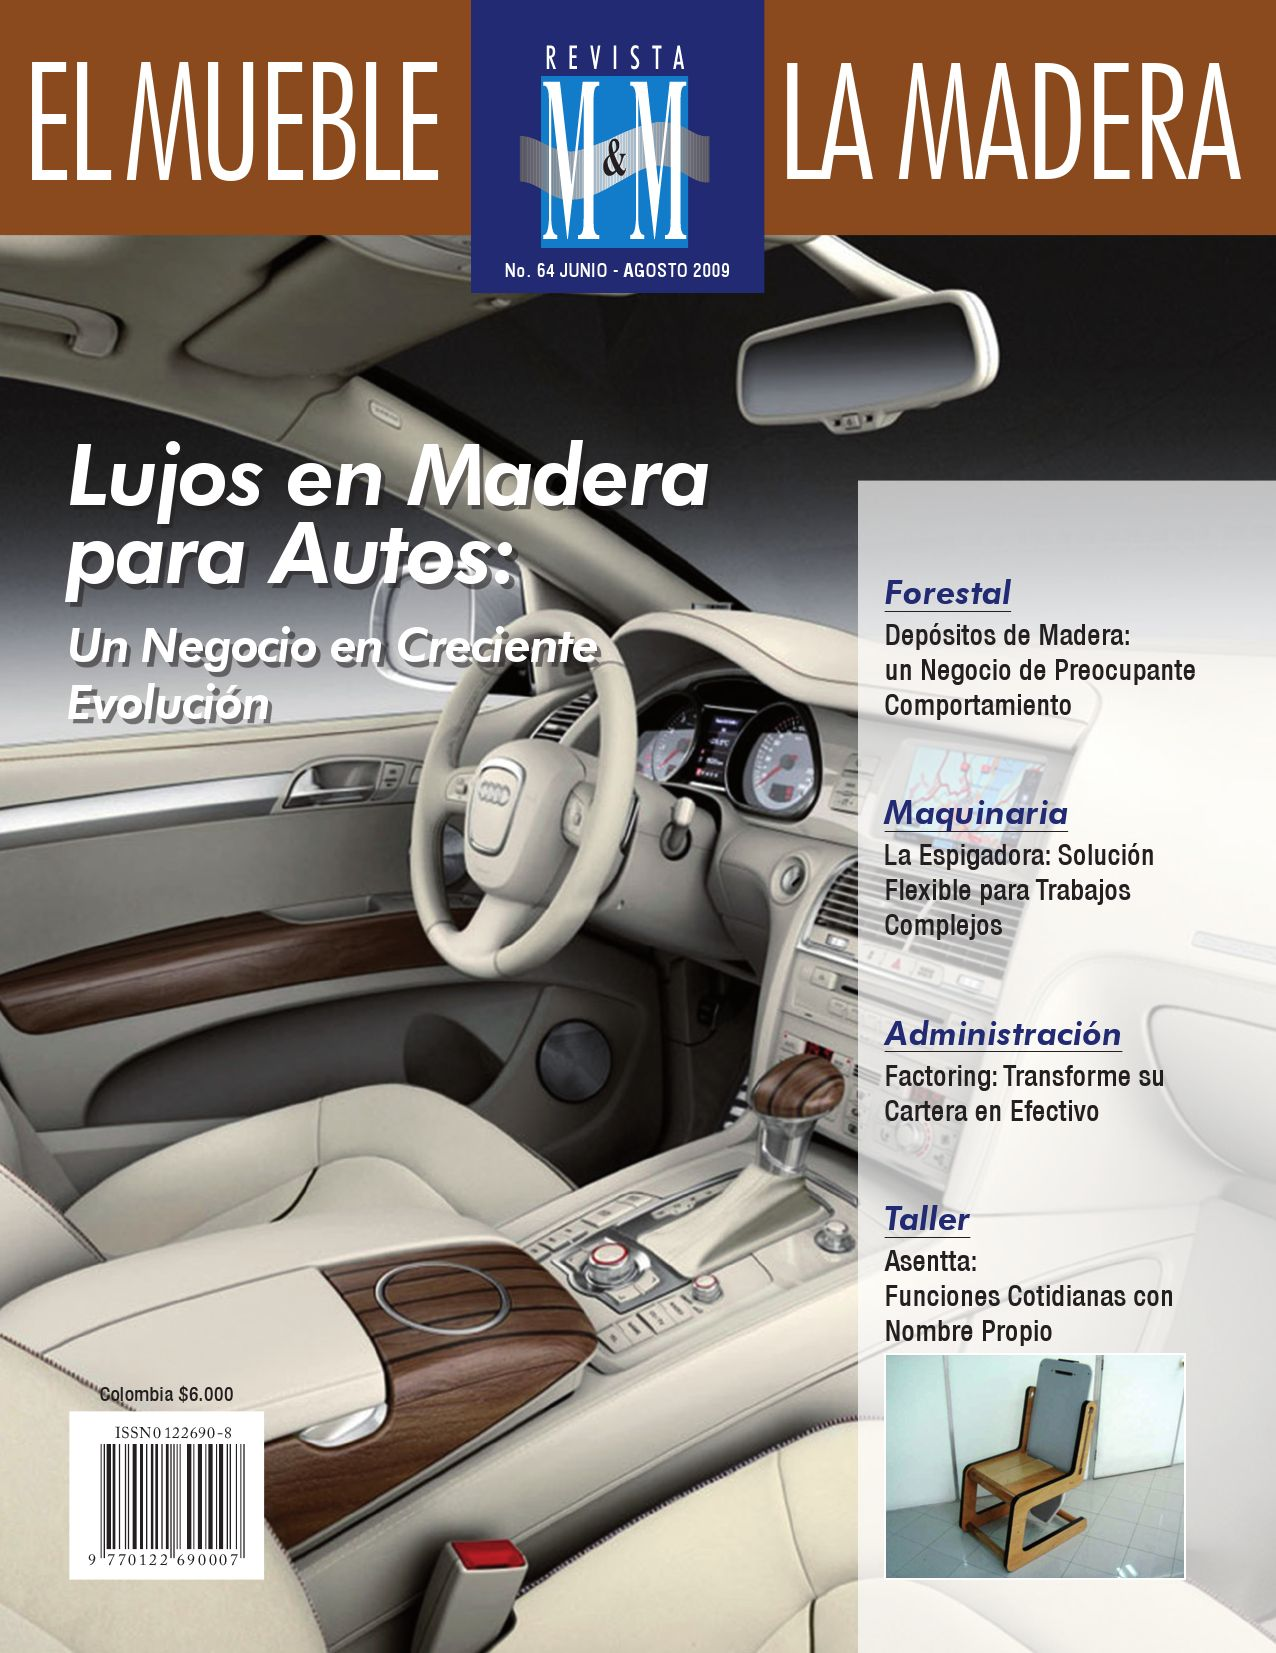 Revista M M No. 64 by Arbol de Tinta - issuu a597cfba93a3